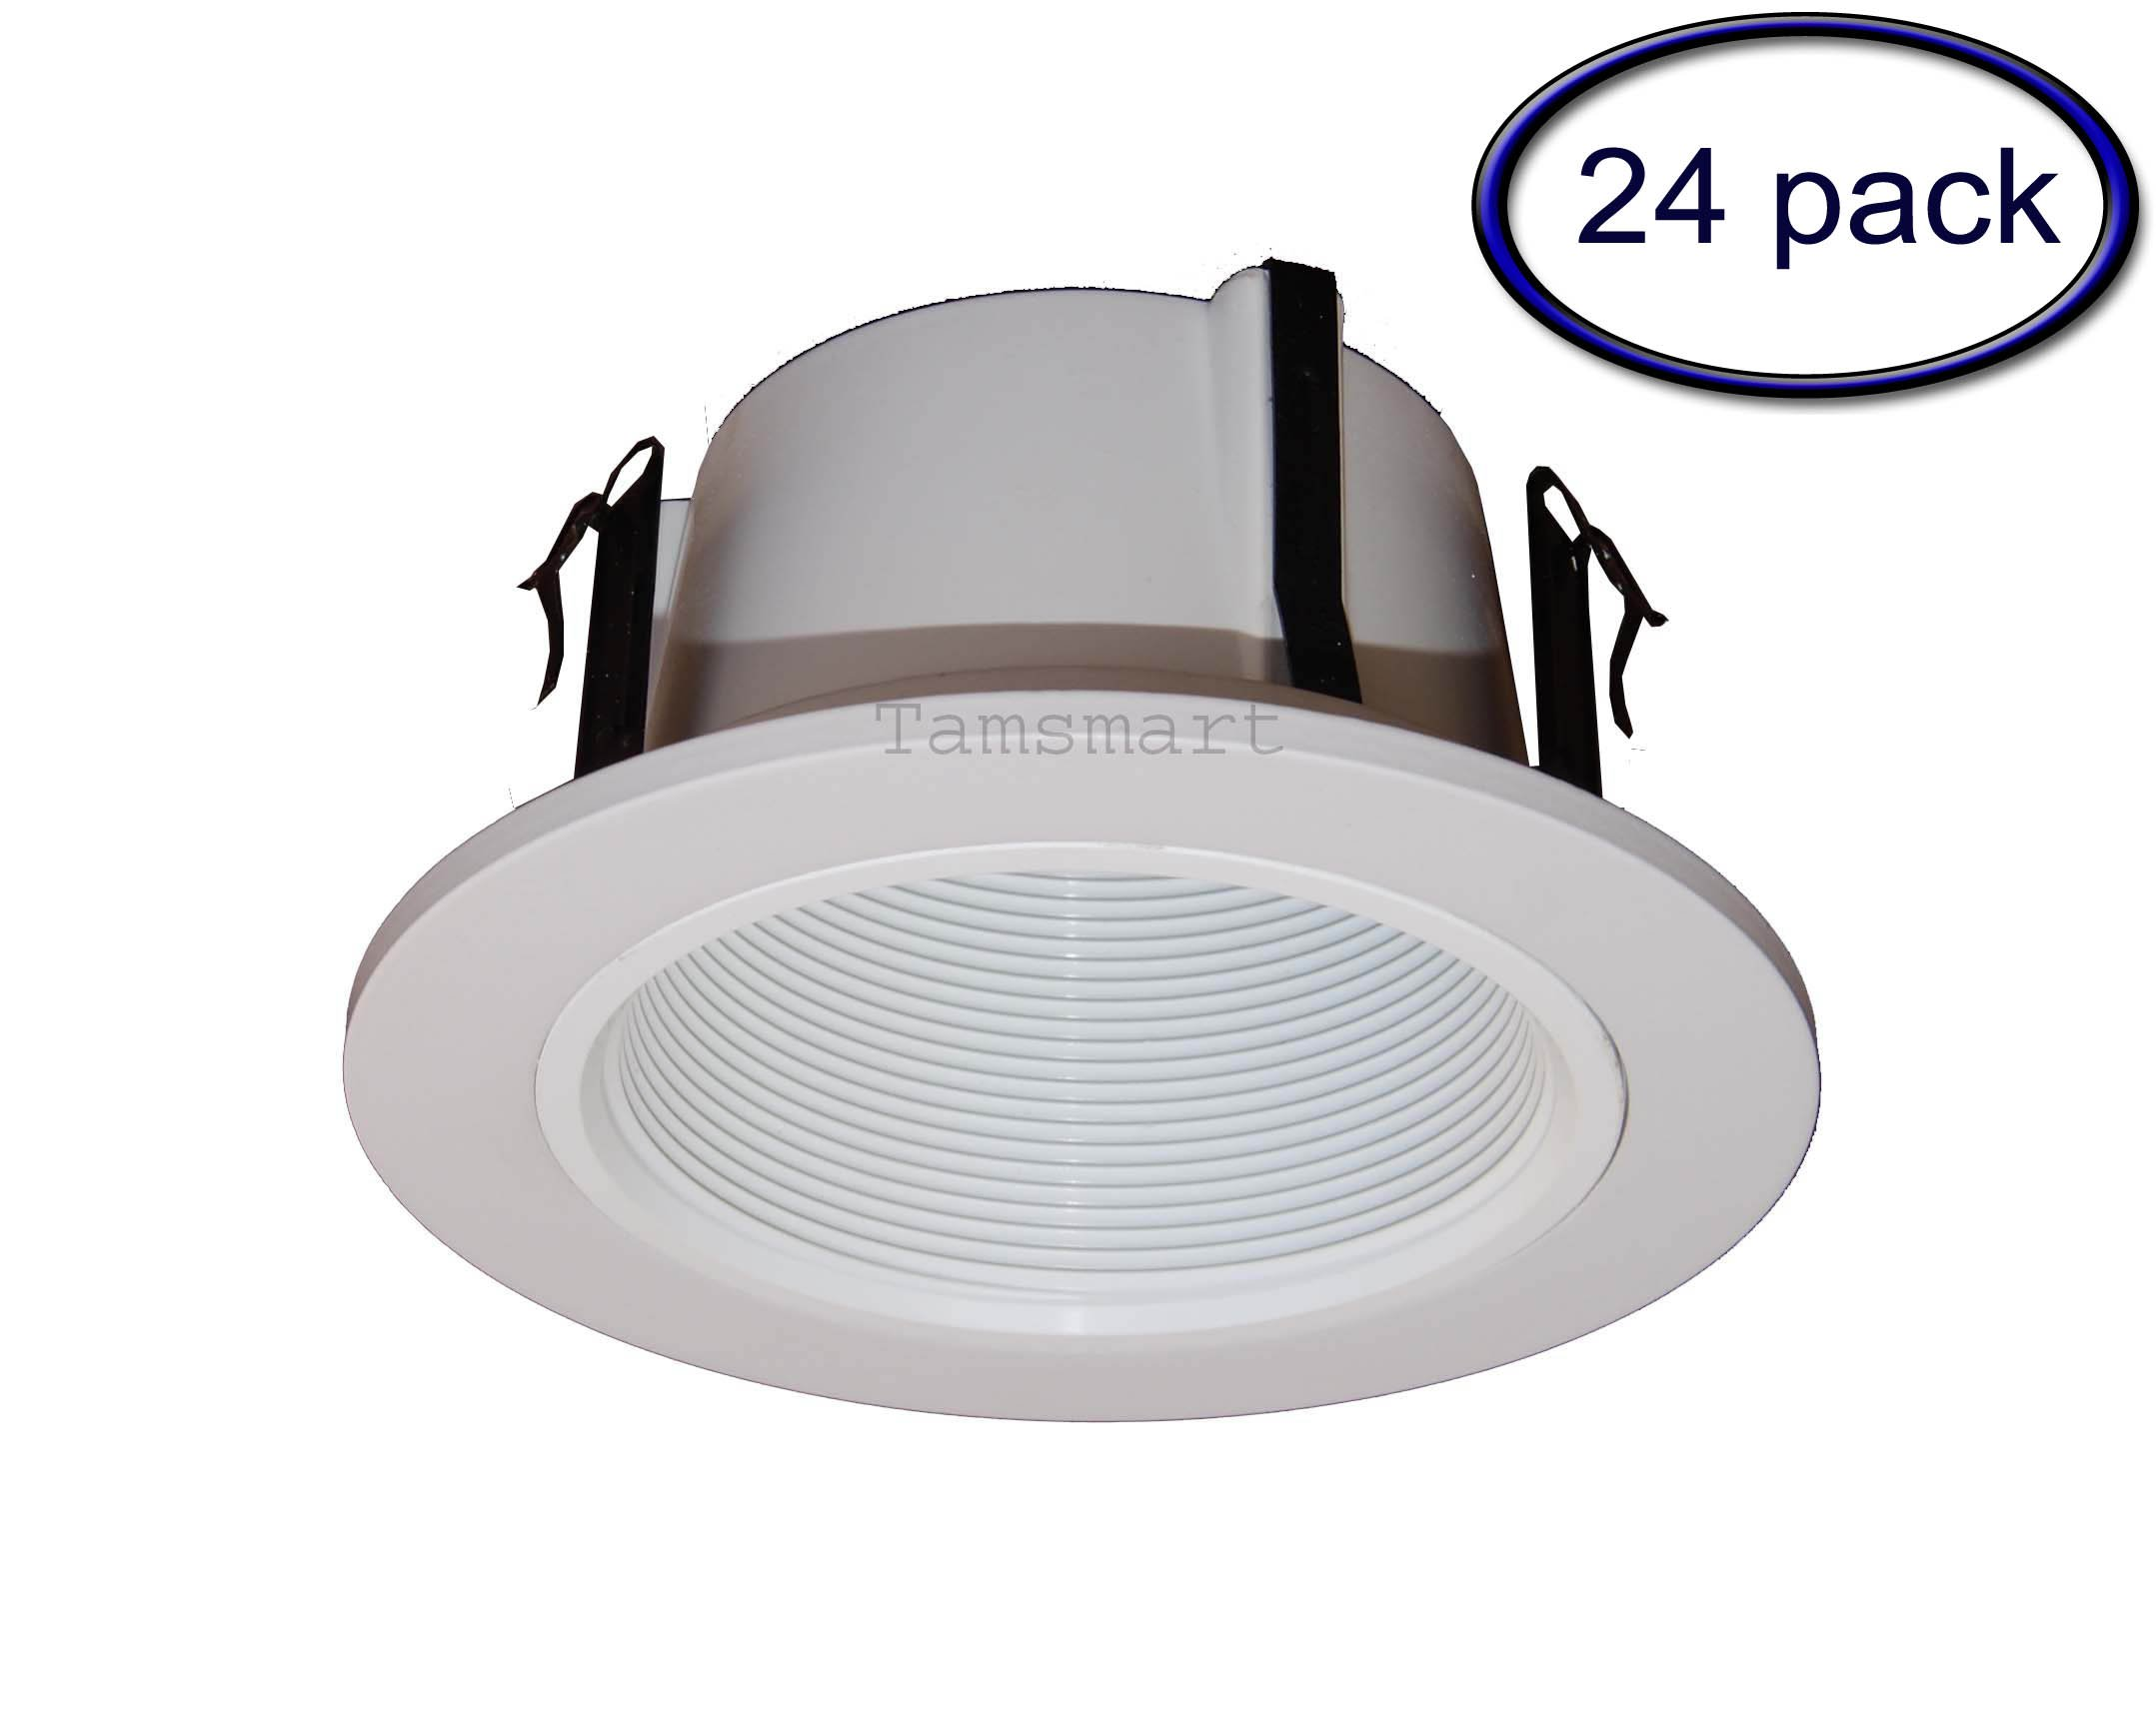 24 Pack---4 Inch Phenolic Stepped Baffle Trim for Recessed Lighting-white Replaces Halo 993w